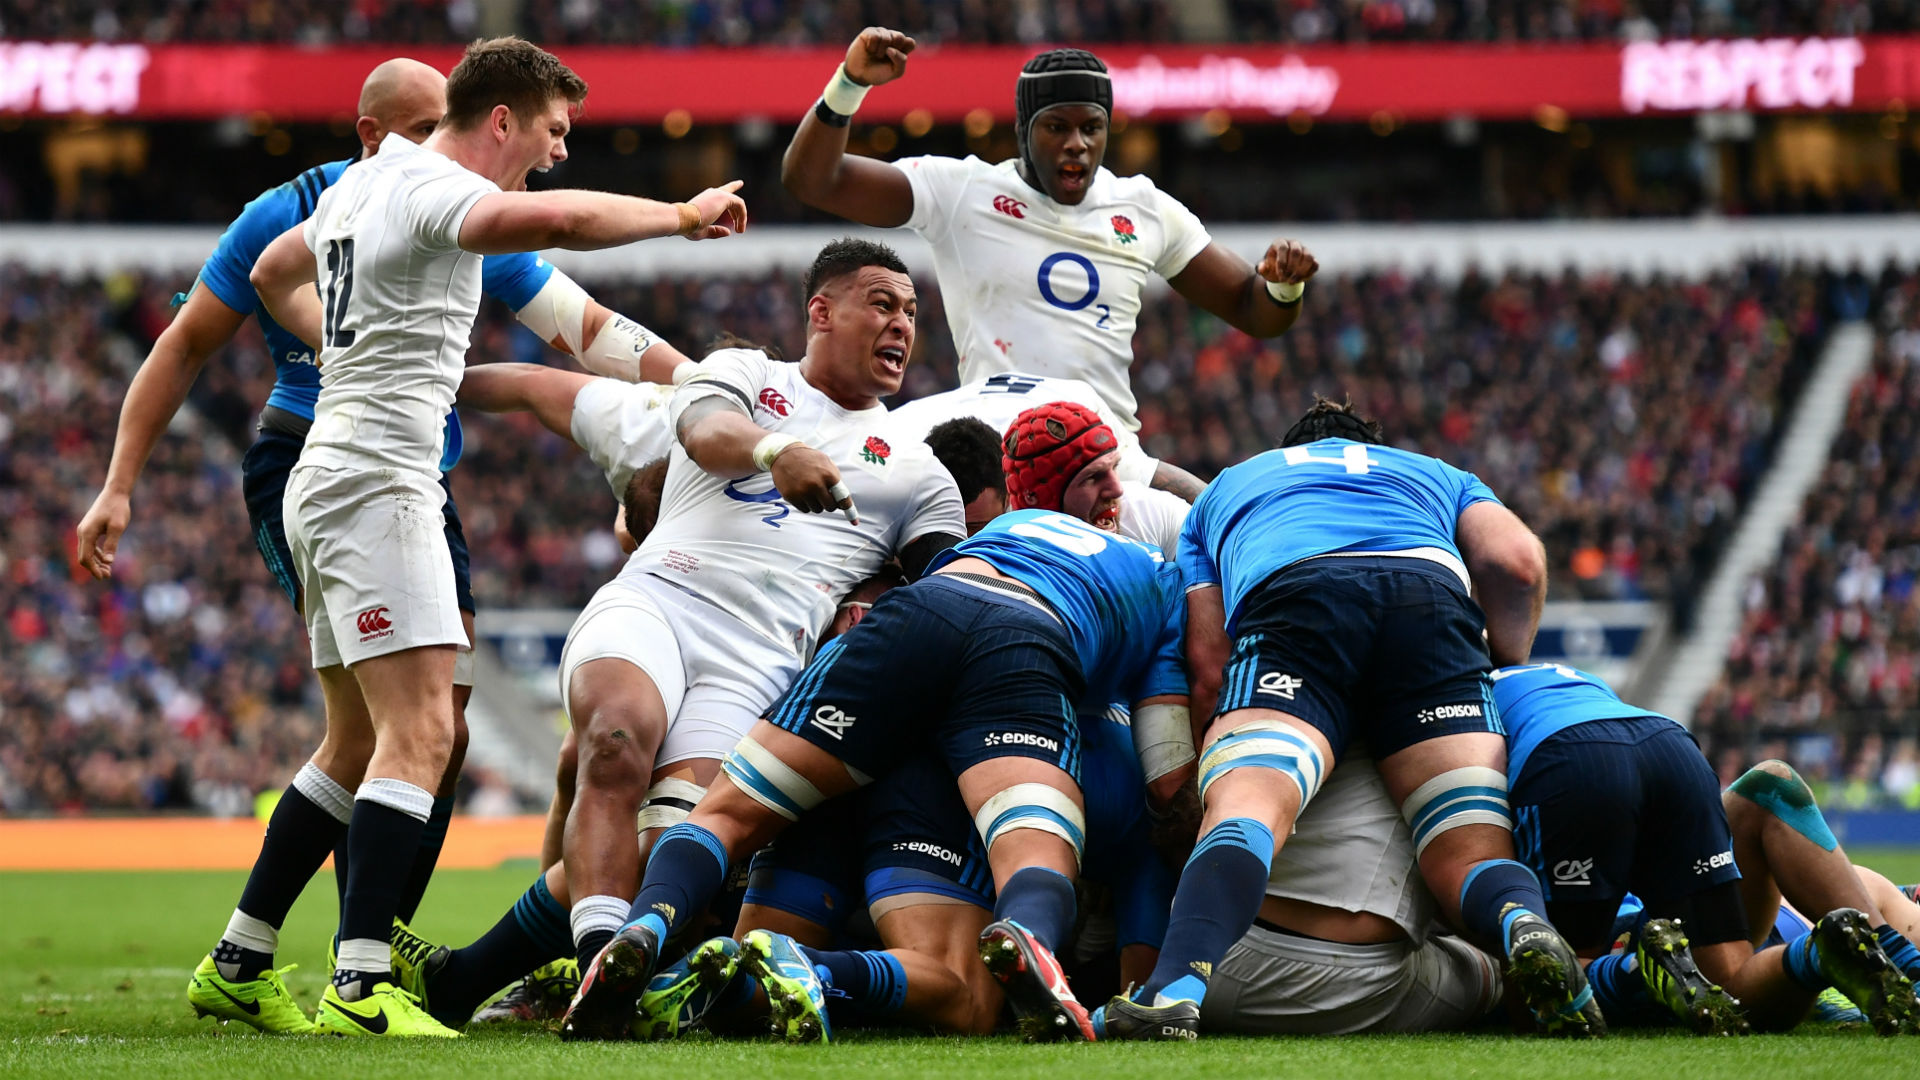 Farrell to start for England against Wallabies, Itoje benched